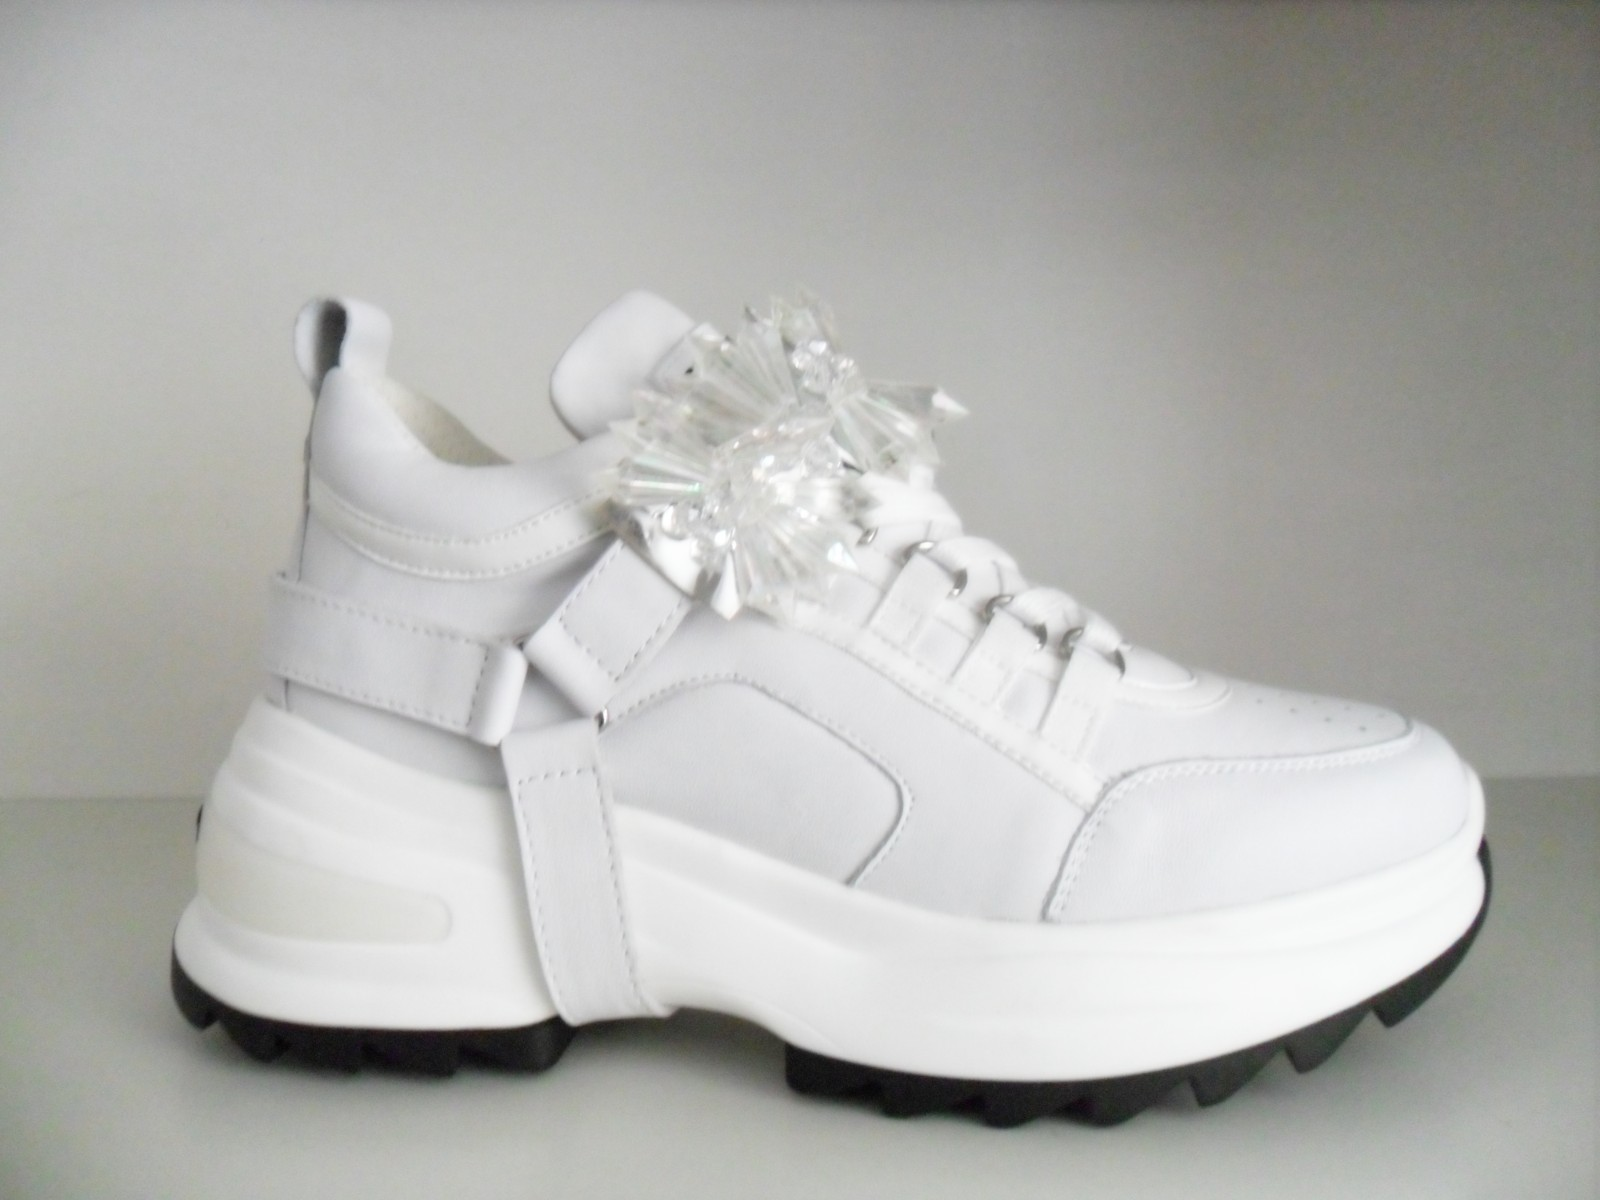 CULT CLE104004 YOUNG LOW SNEAKERS IN PELLE BIANCA CON PATCH REMOVIBILE